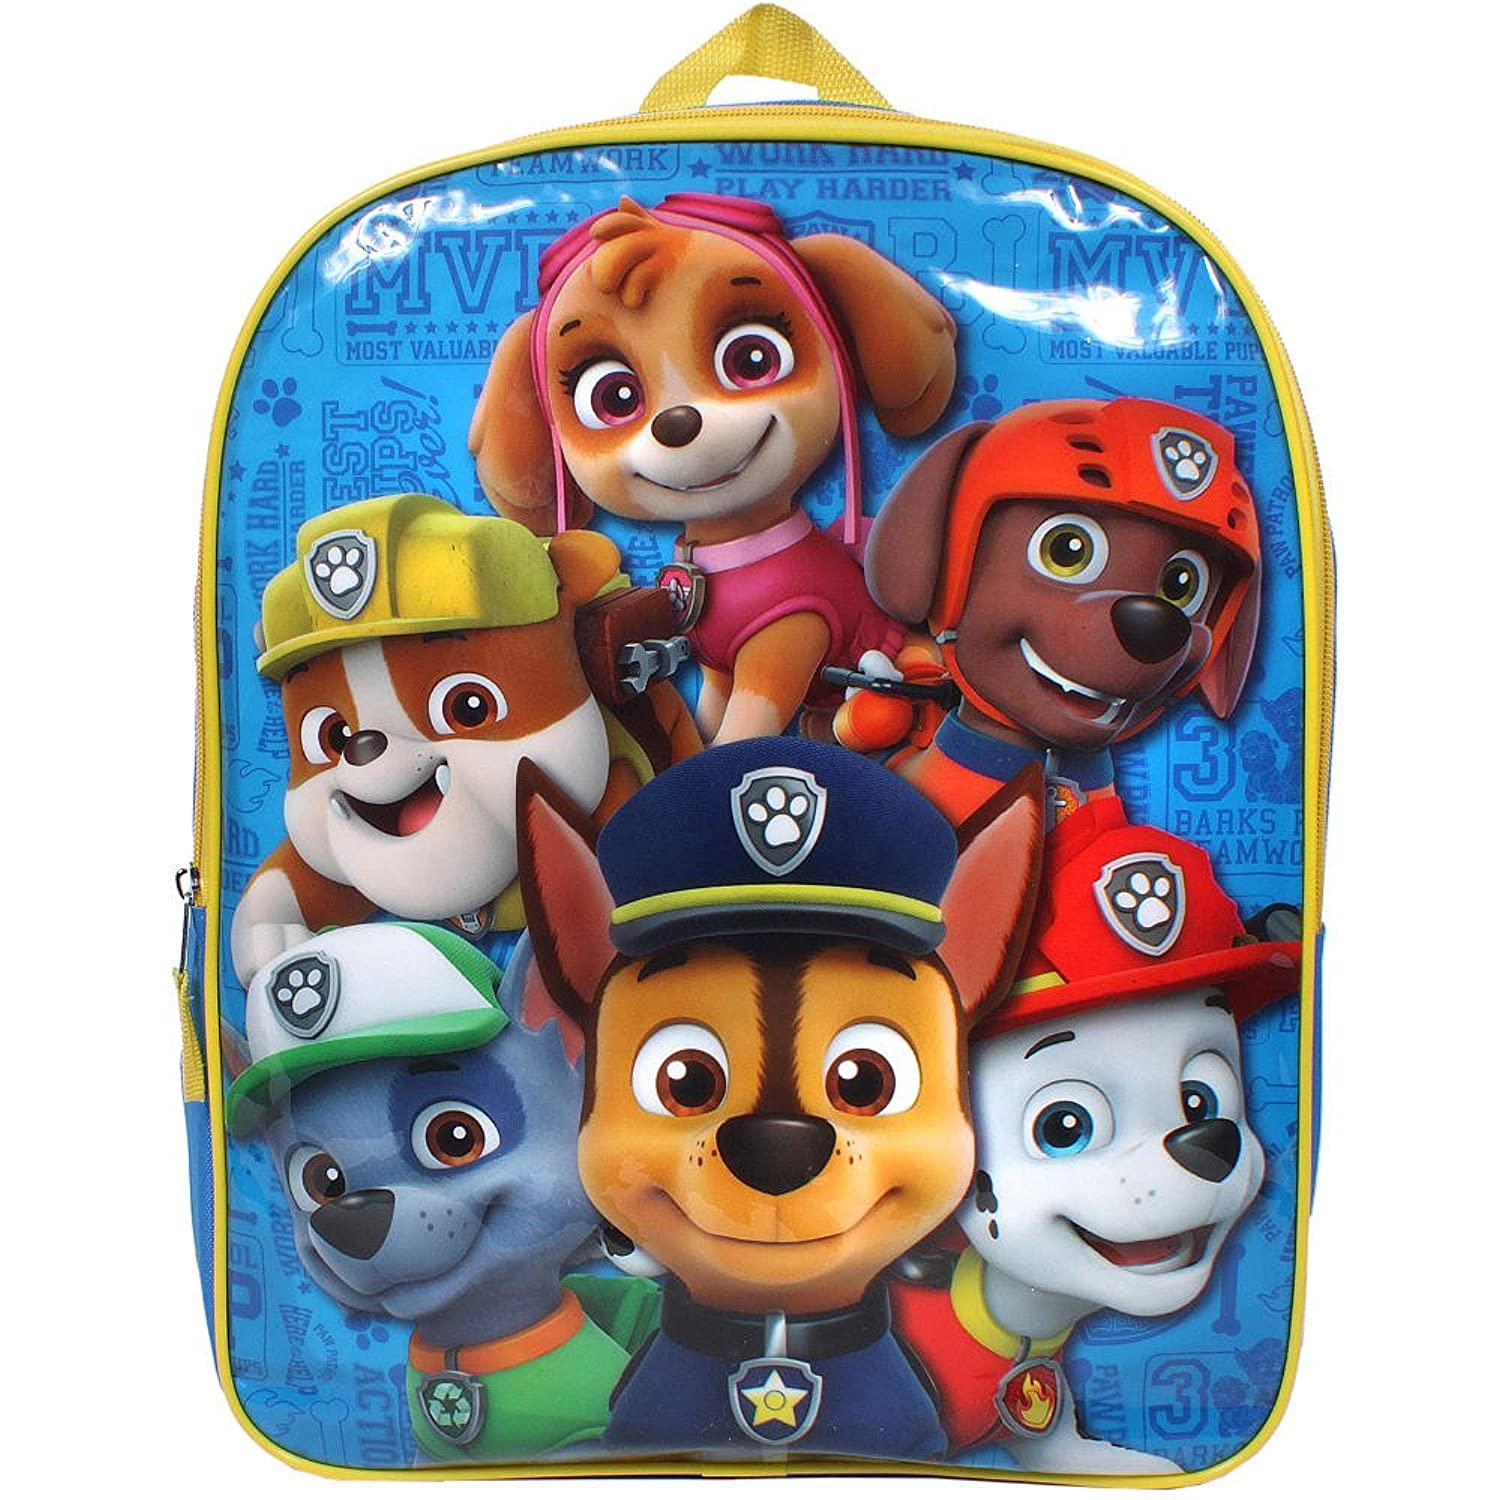 Paw Patrol Here to Help Backpack Accessory Innovations